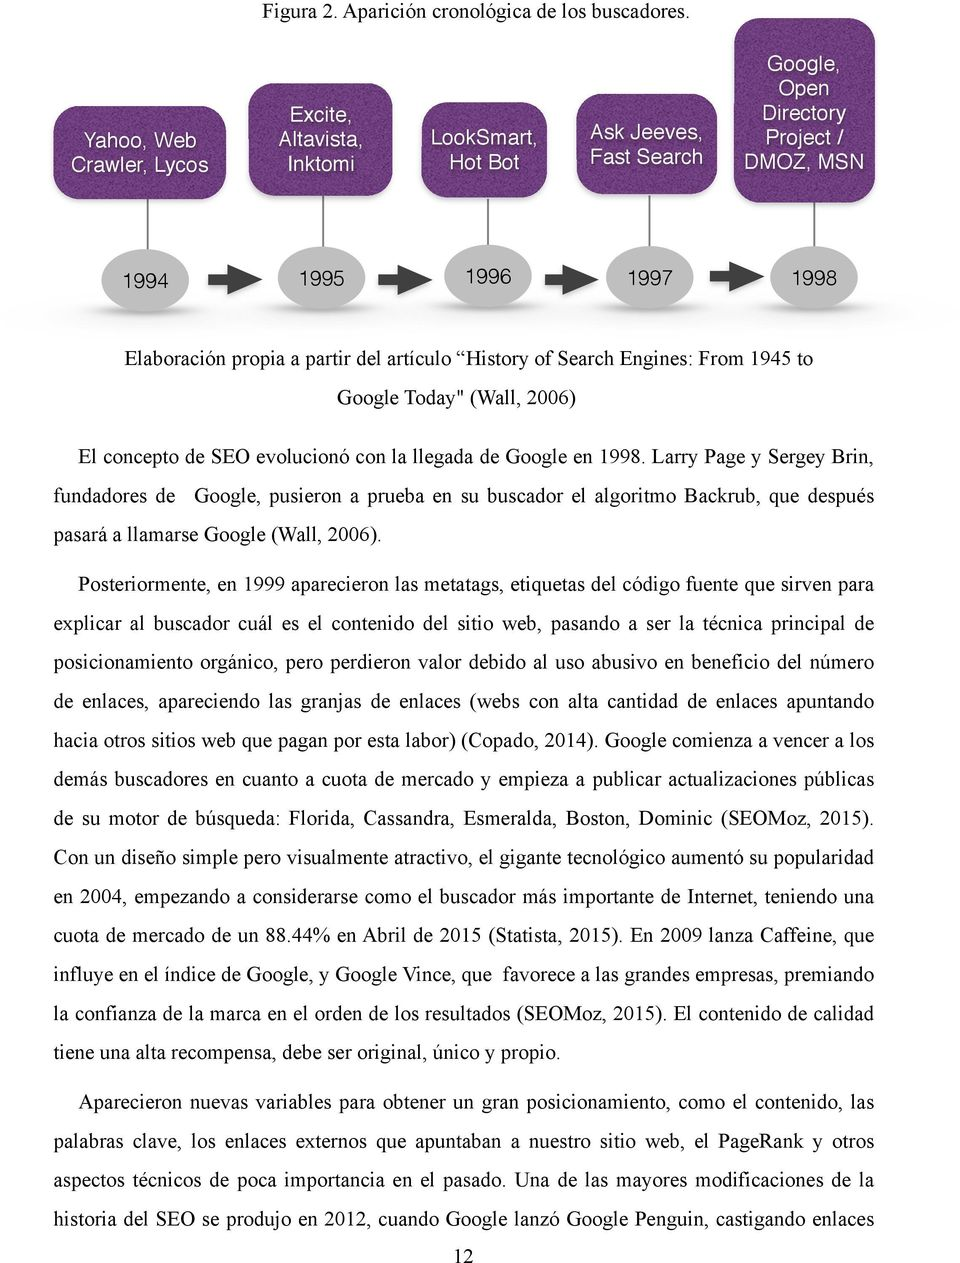 "artículo History of Search Engines: From 1945 to Google Today"" (Wall, 2006) El concepto de SEO evolucionó con la llegada de Google en 1998."